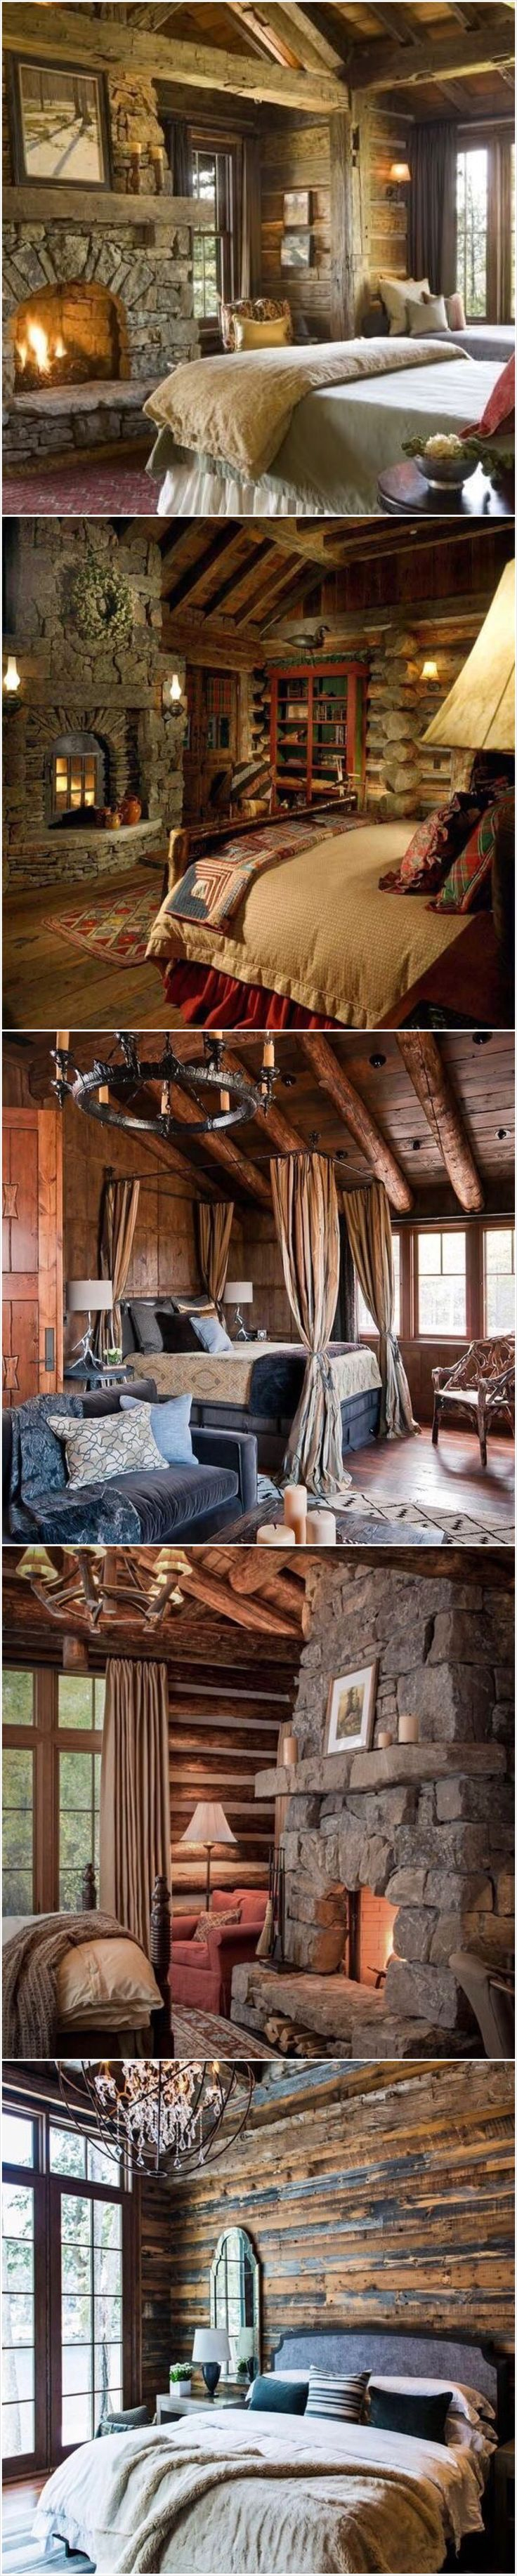 25 best ideas about log home decorating on pinterest log home living log cabin houses and log cabin bedrooms